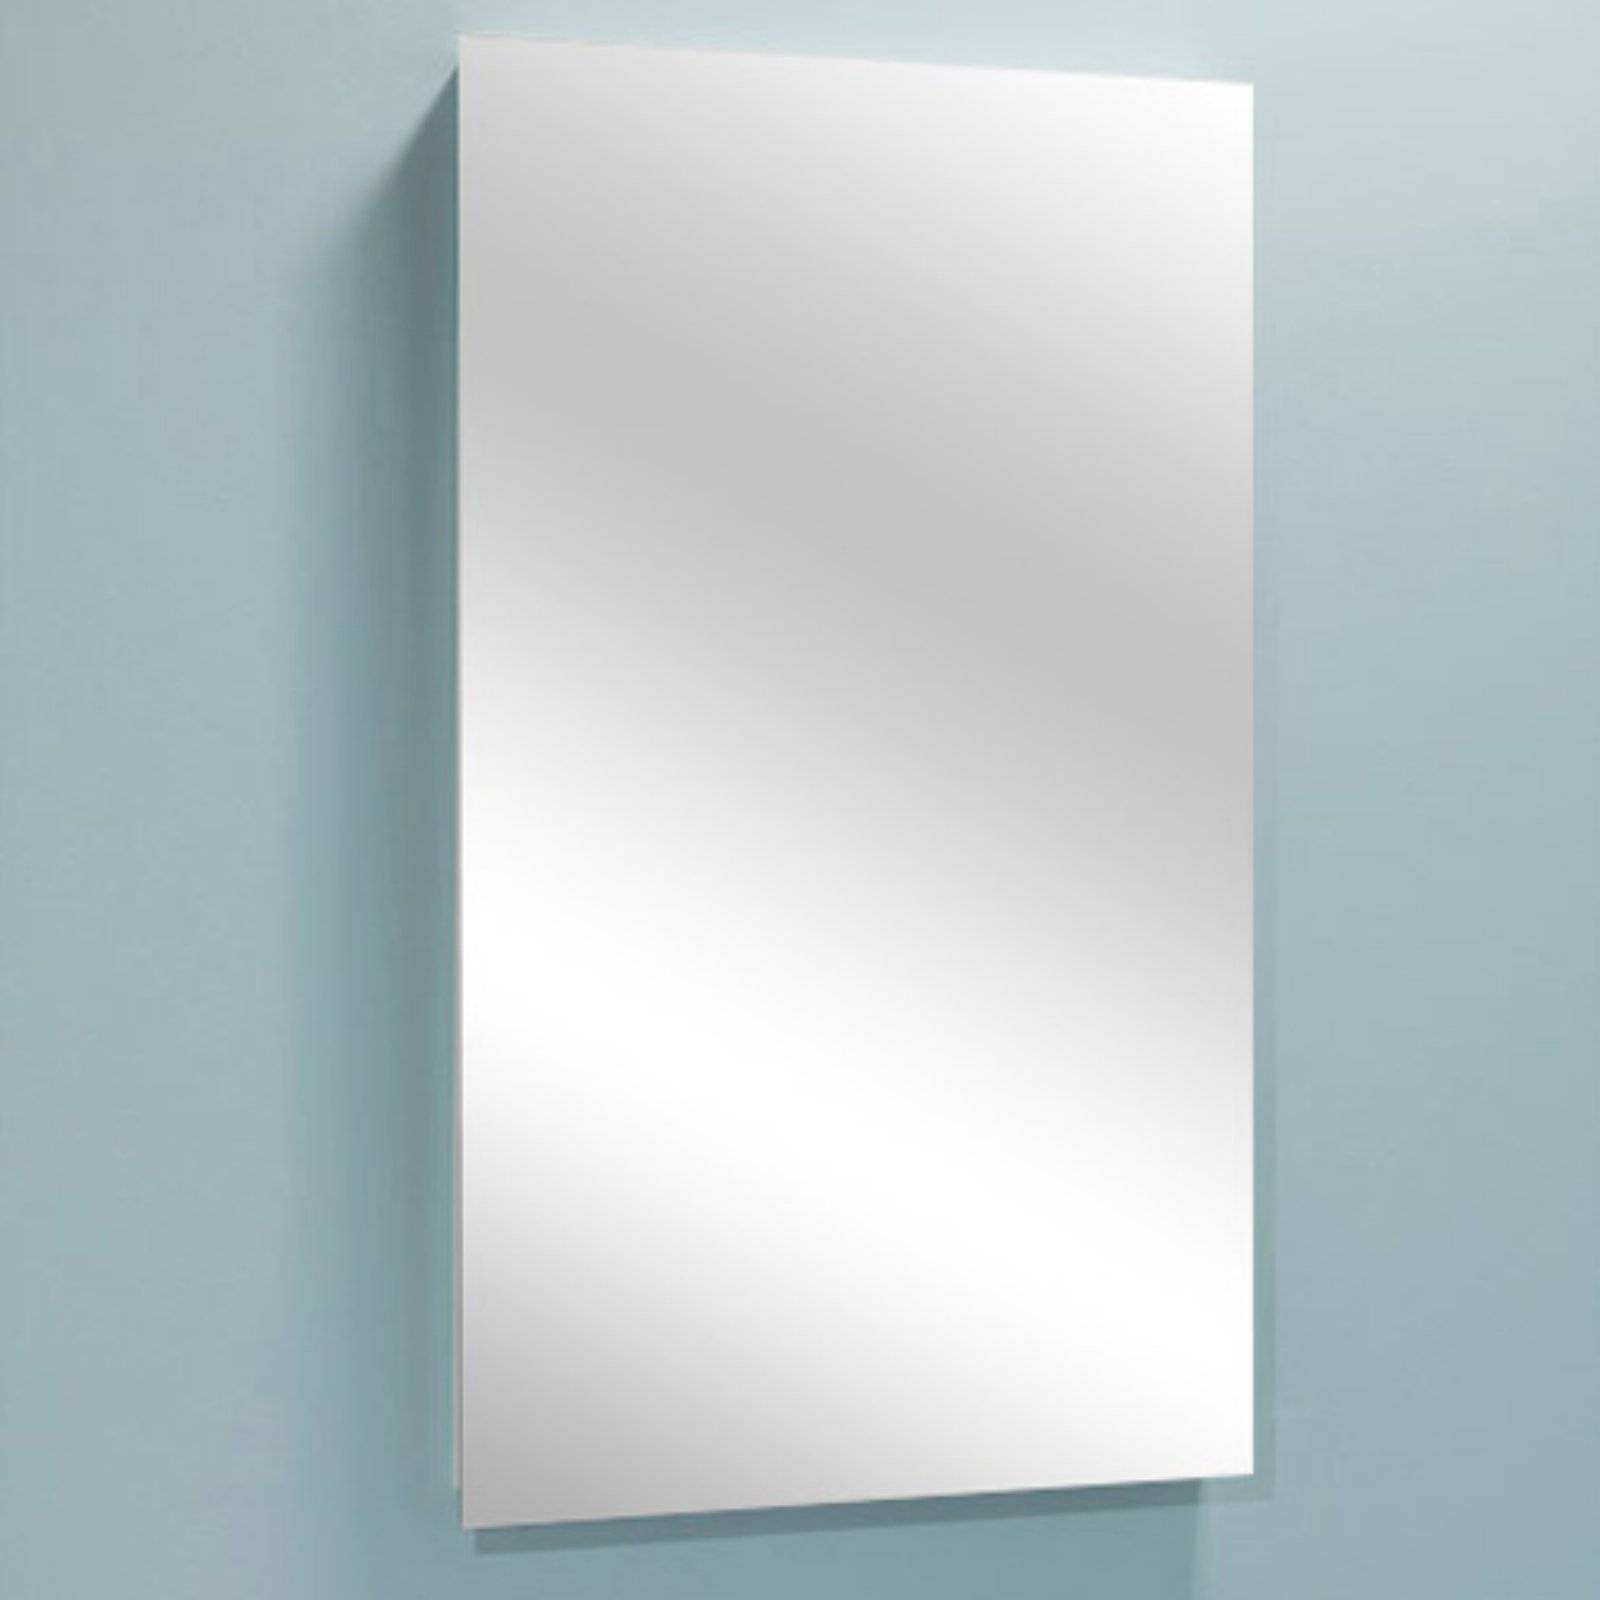 Jensen Medicine Cabinet Focus Frameless 16W x 22H in. Medicine Cabinet B7233 by Lighthouse Distribution Corp